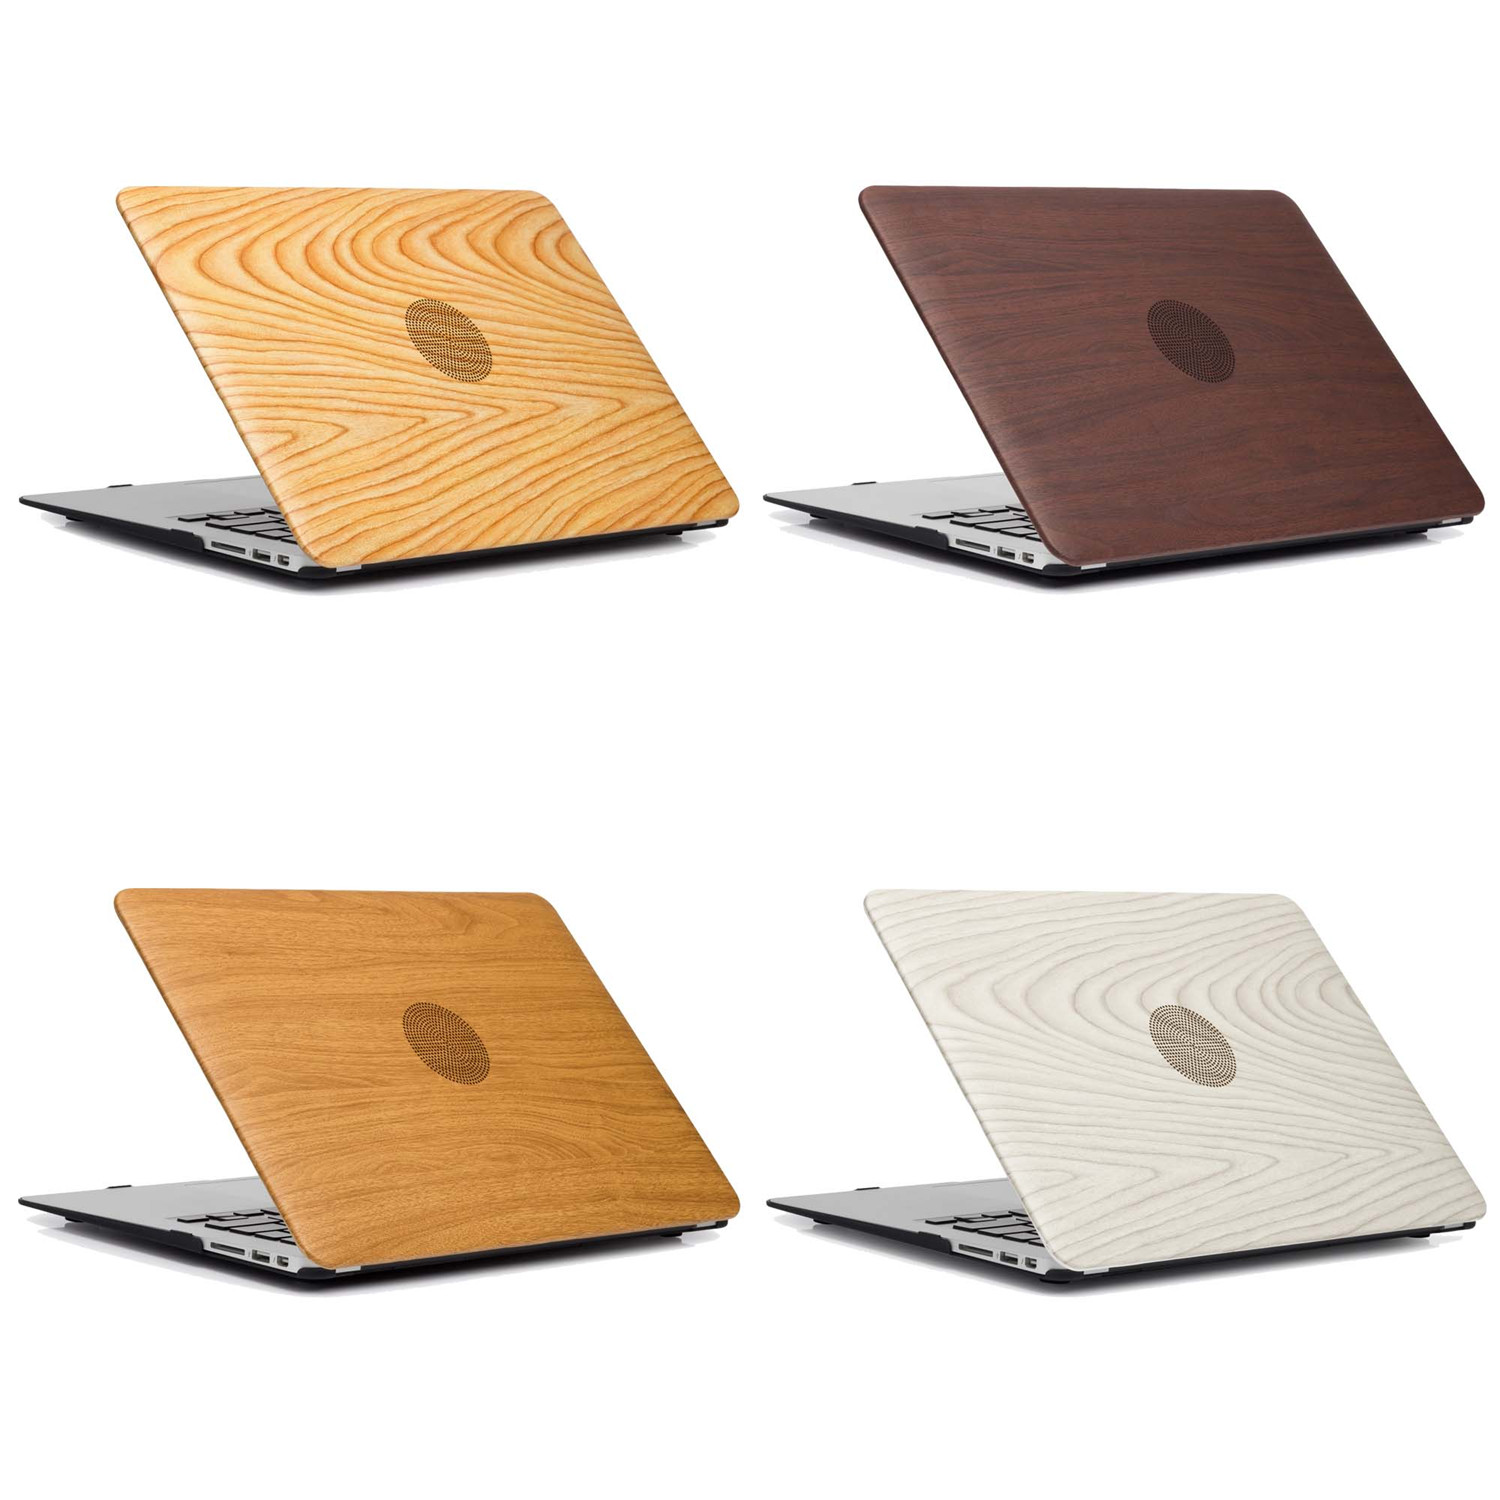 "PU Leather Wood Grain Hard Case Cover for Macbook Air Pro 11/"" 13/"" 15/"" Retina 12/"""